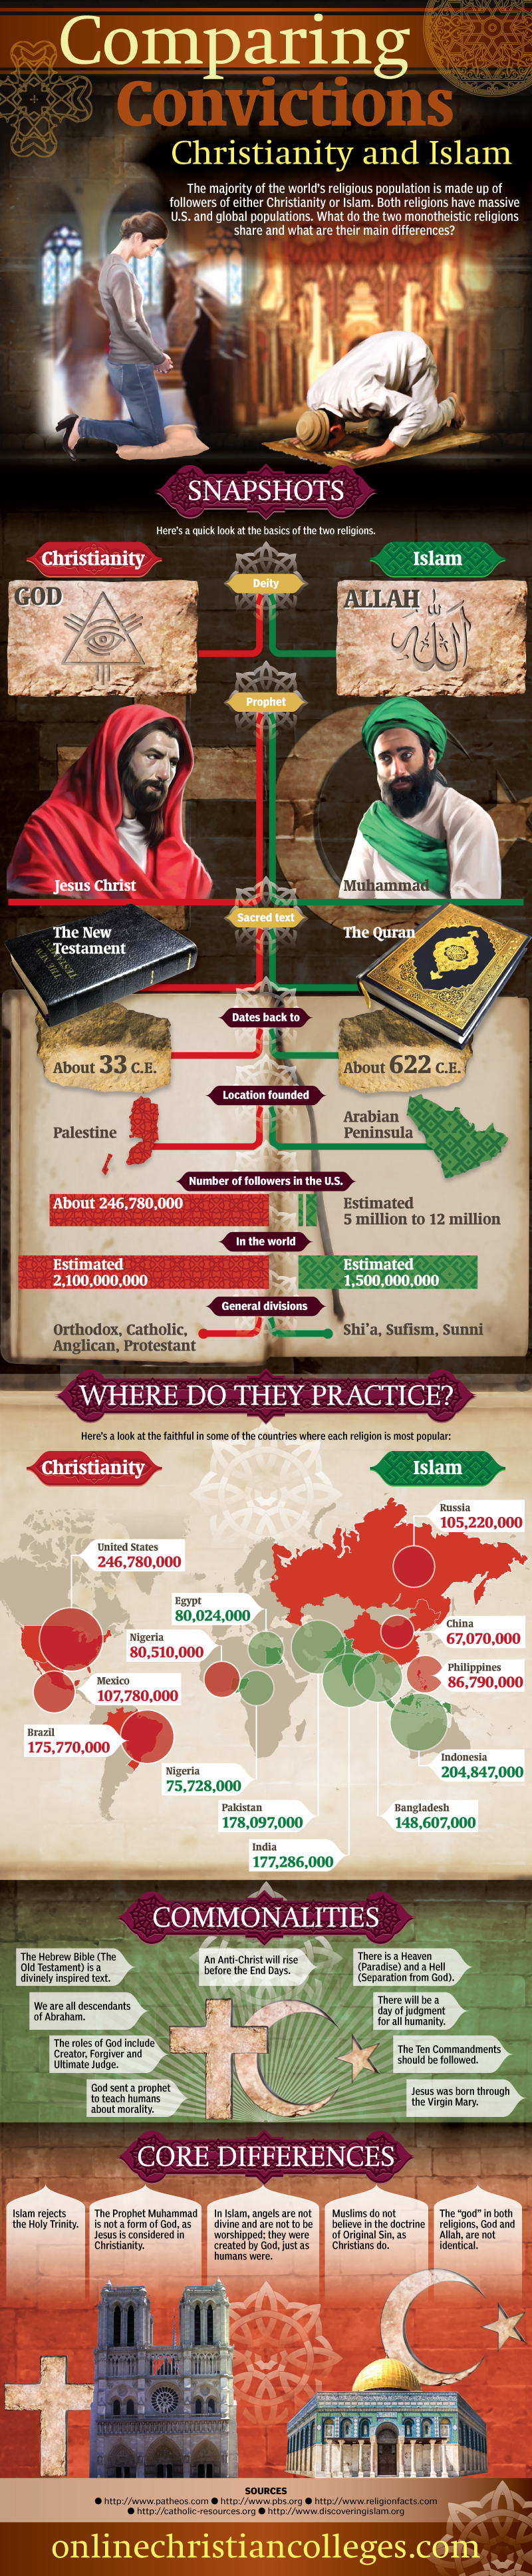 Comparing Convictions: Christianity and Islam